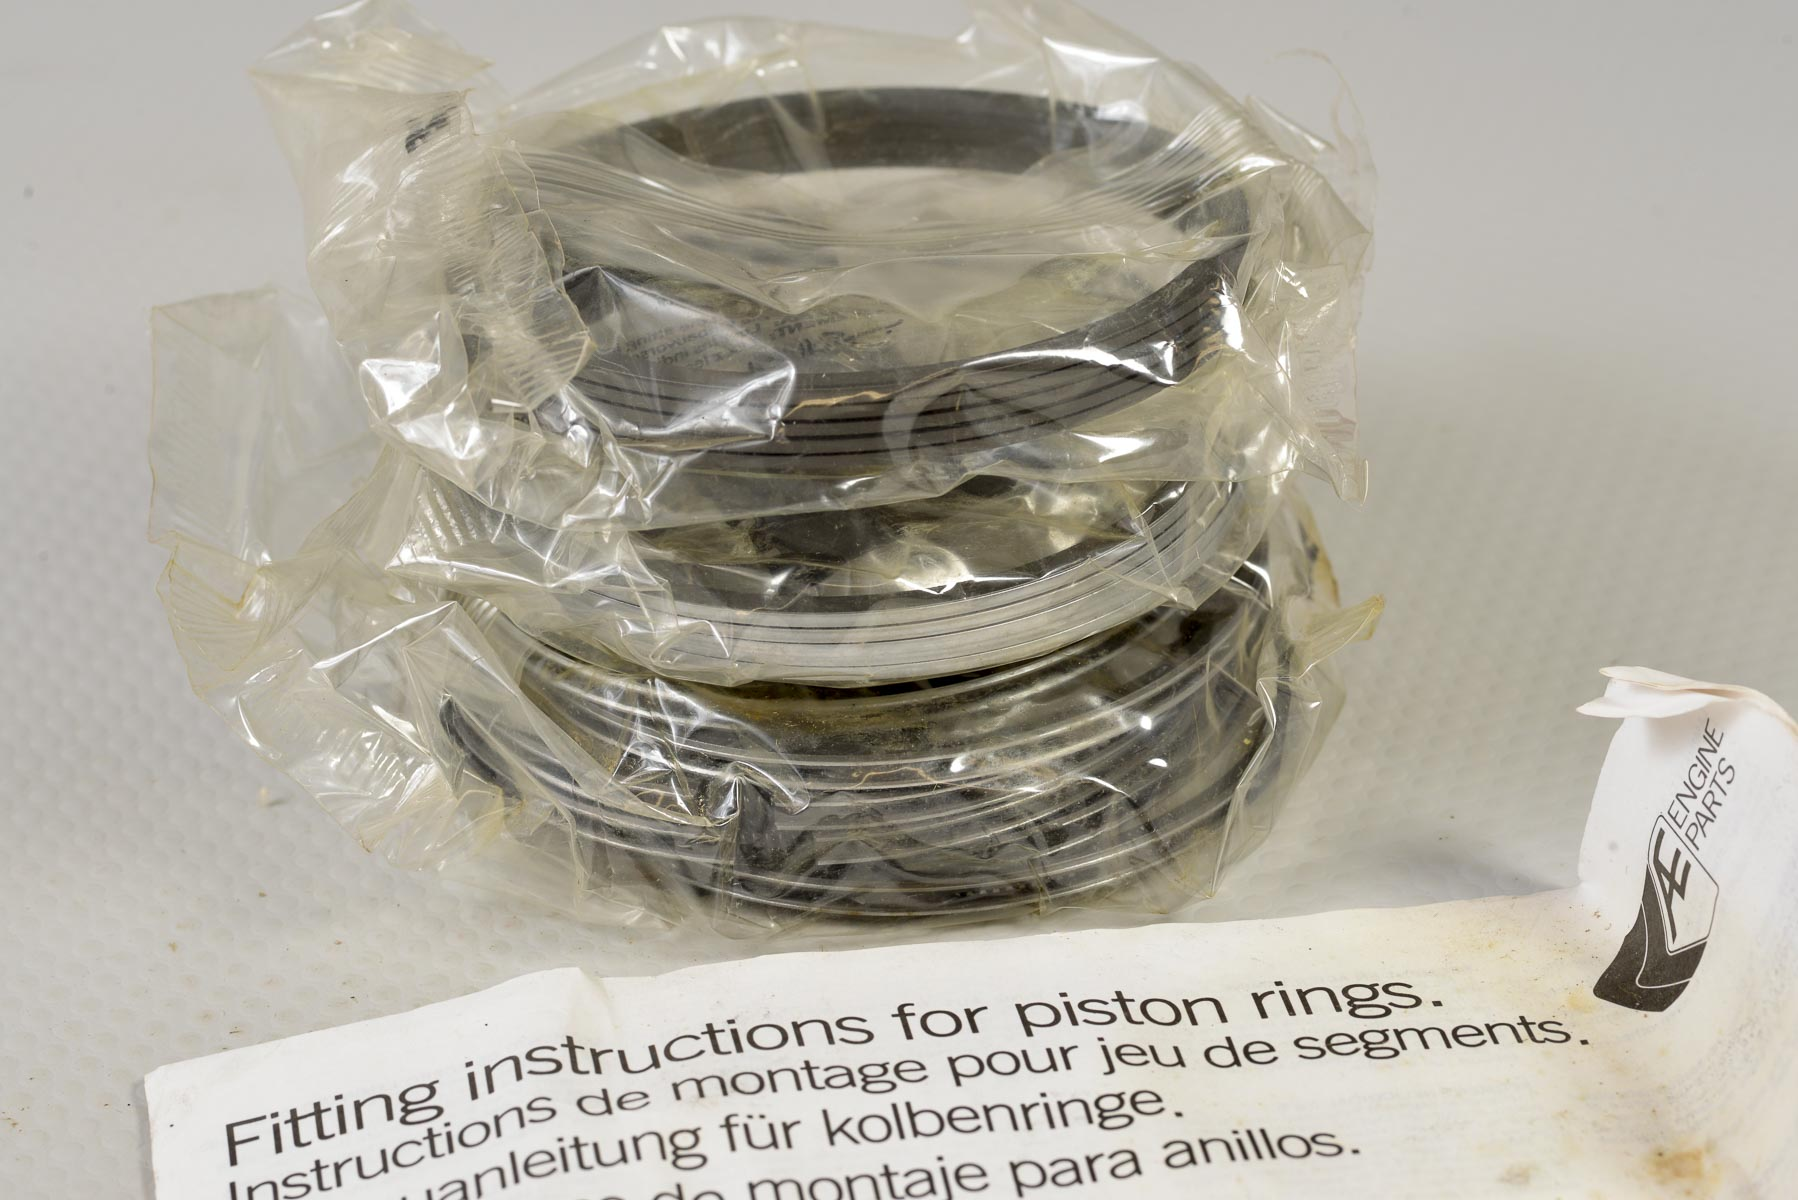 AE Hepolite R39520/V1 - Piston Ring 0 030 in  over, Bore Size 3 625 in  /  92 075 mm, Set of 6, NOS